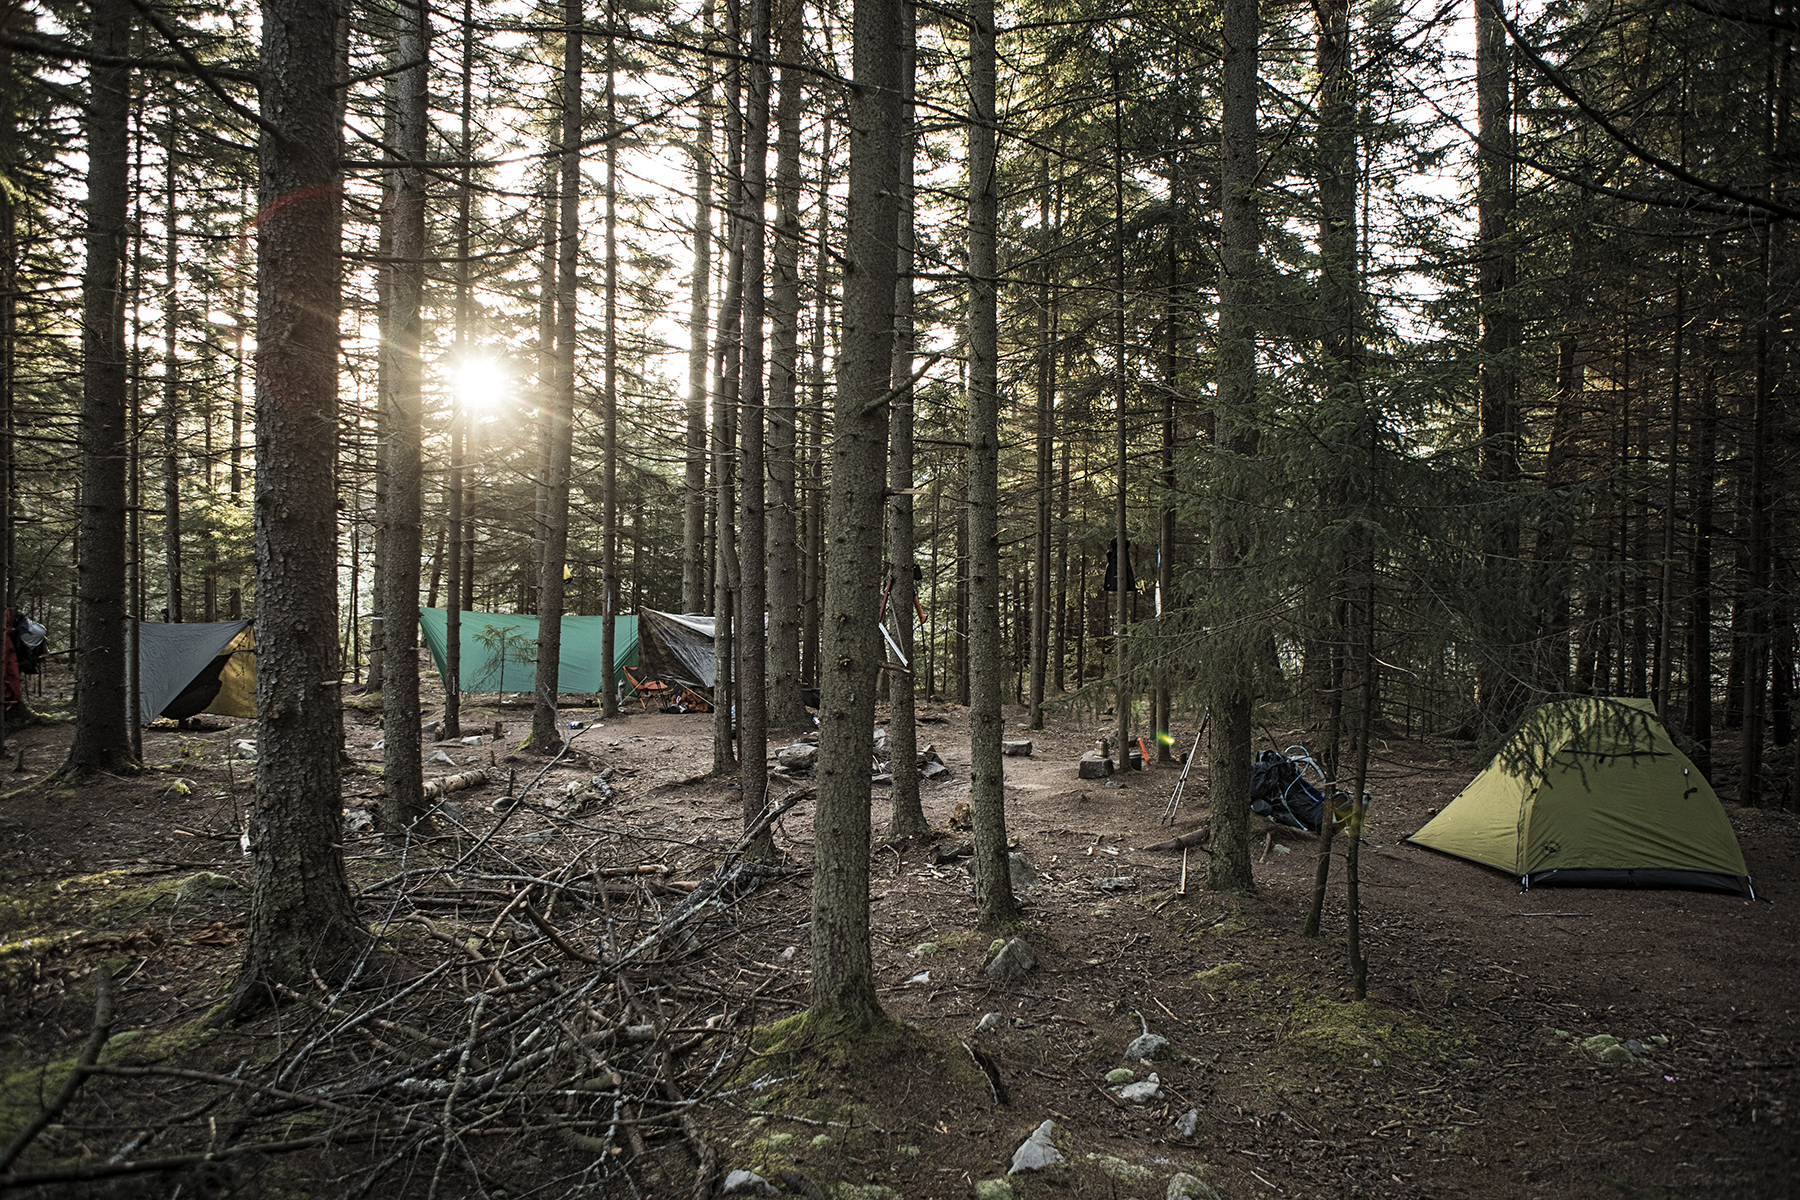 Sun rises on our frozen camp. It looks so inviting for 10 degrees.